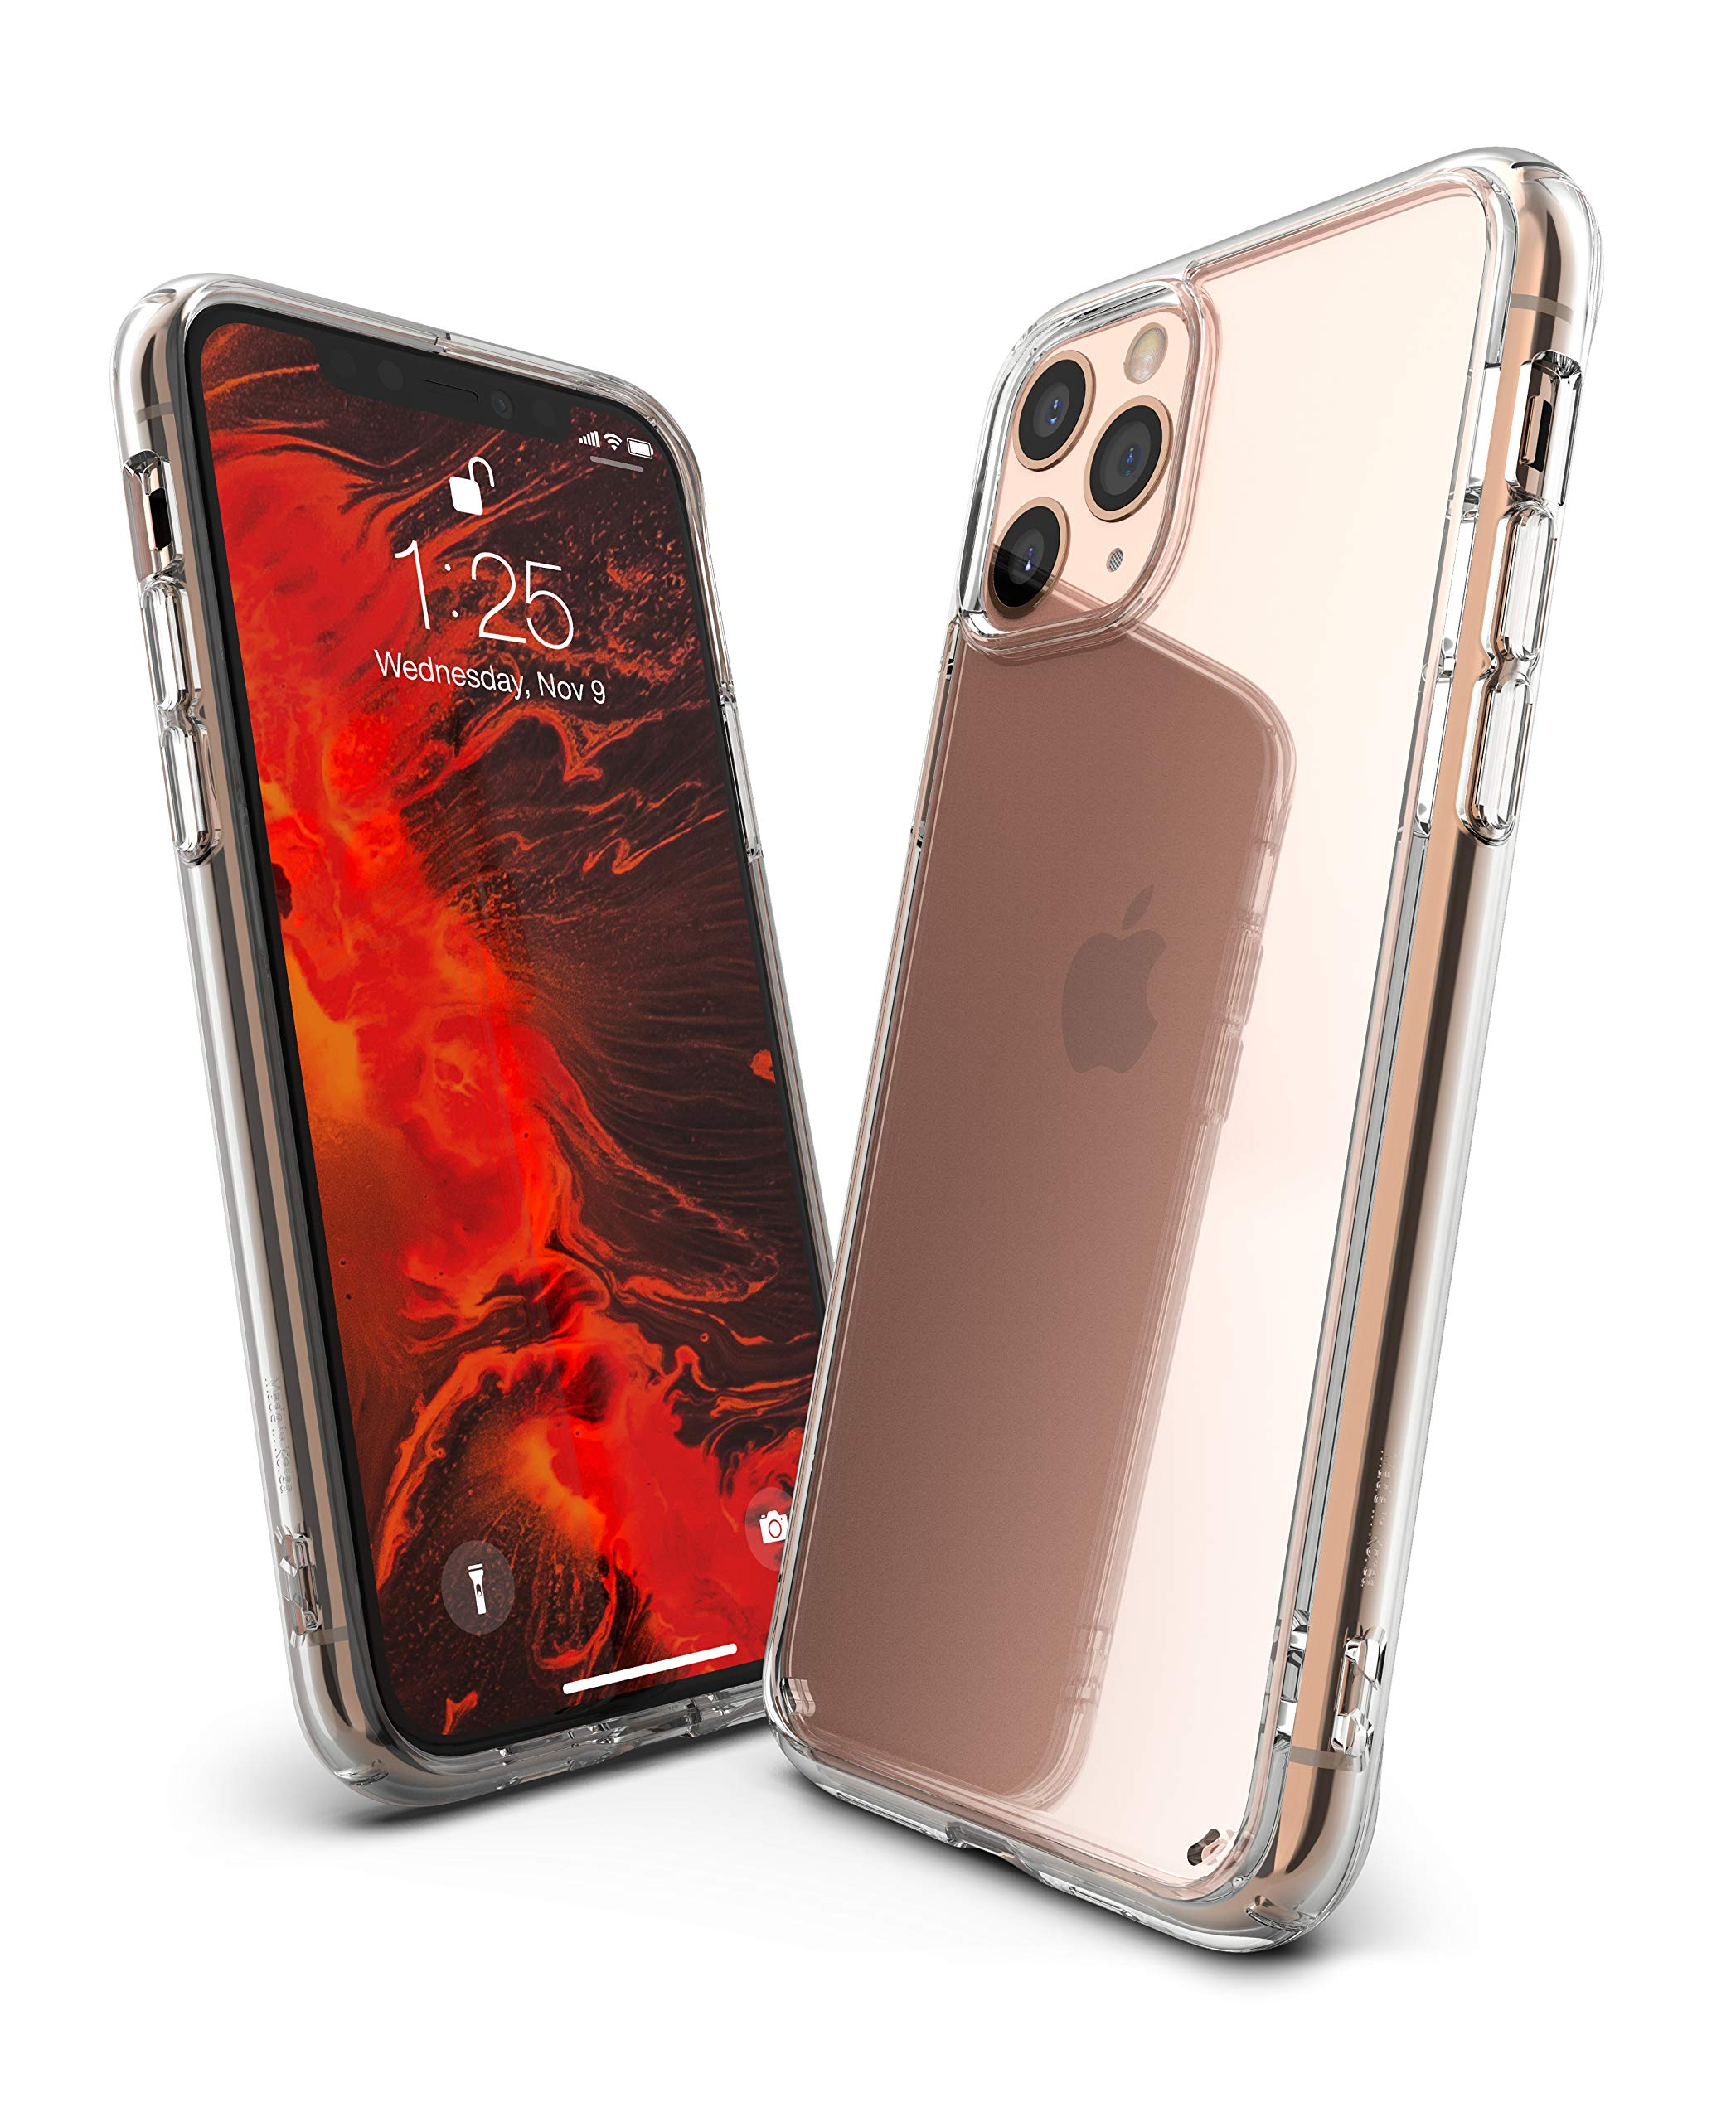 """Ringke Fusion Case Made for iPhone 11 Pro (5.8"""") (2019) Tough Impact Alleviation Technology Raised Bezel Shield for iPhone 11 Pro Case Cover - Clear Transparent"""